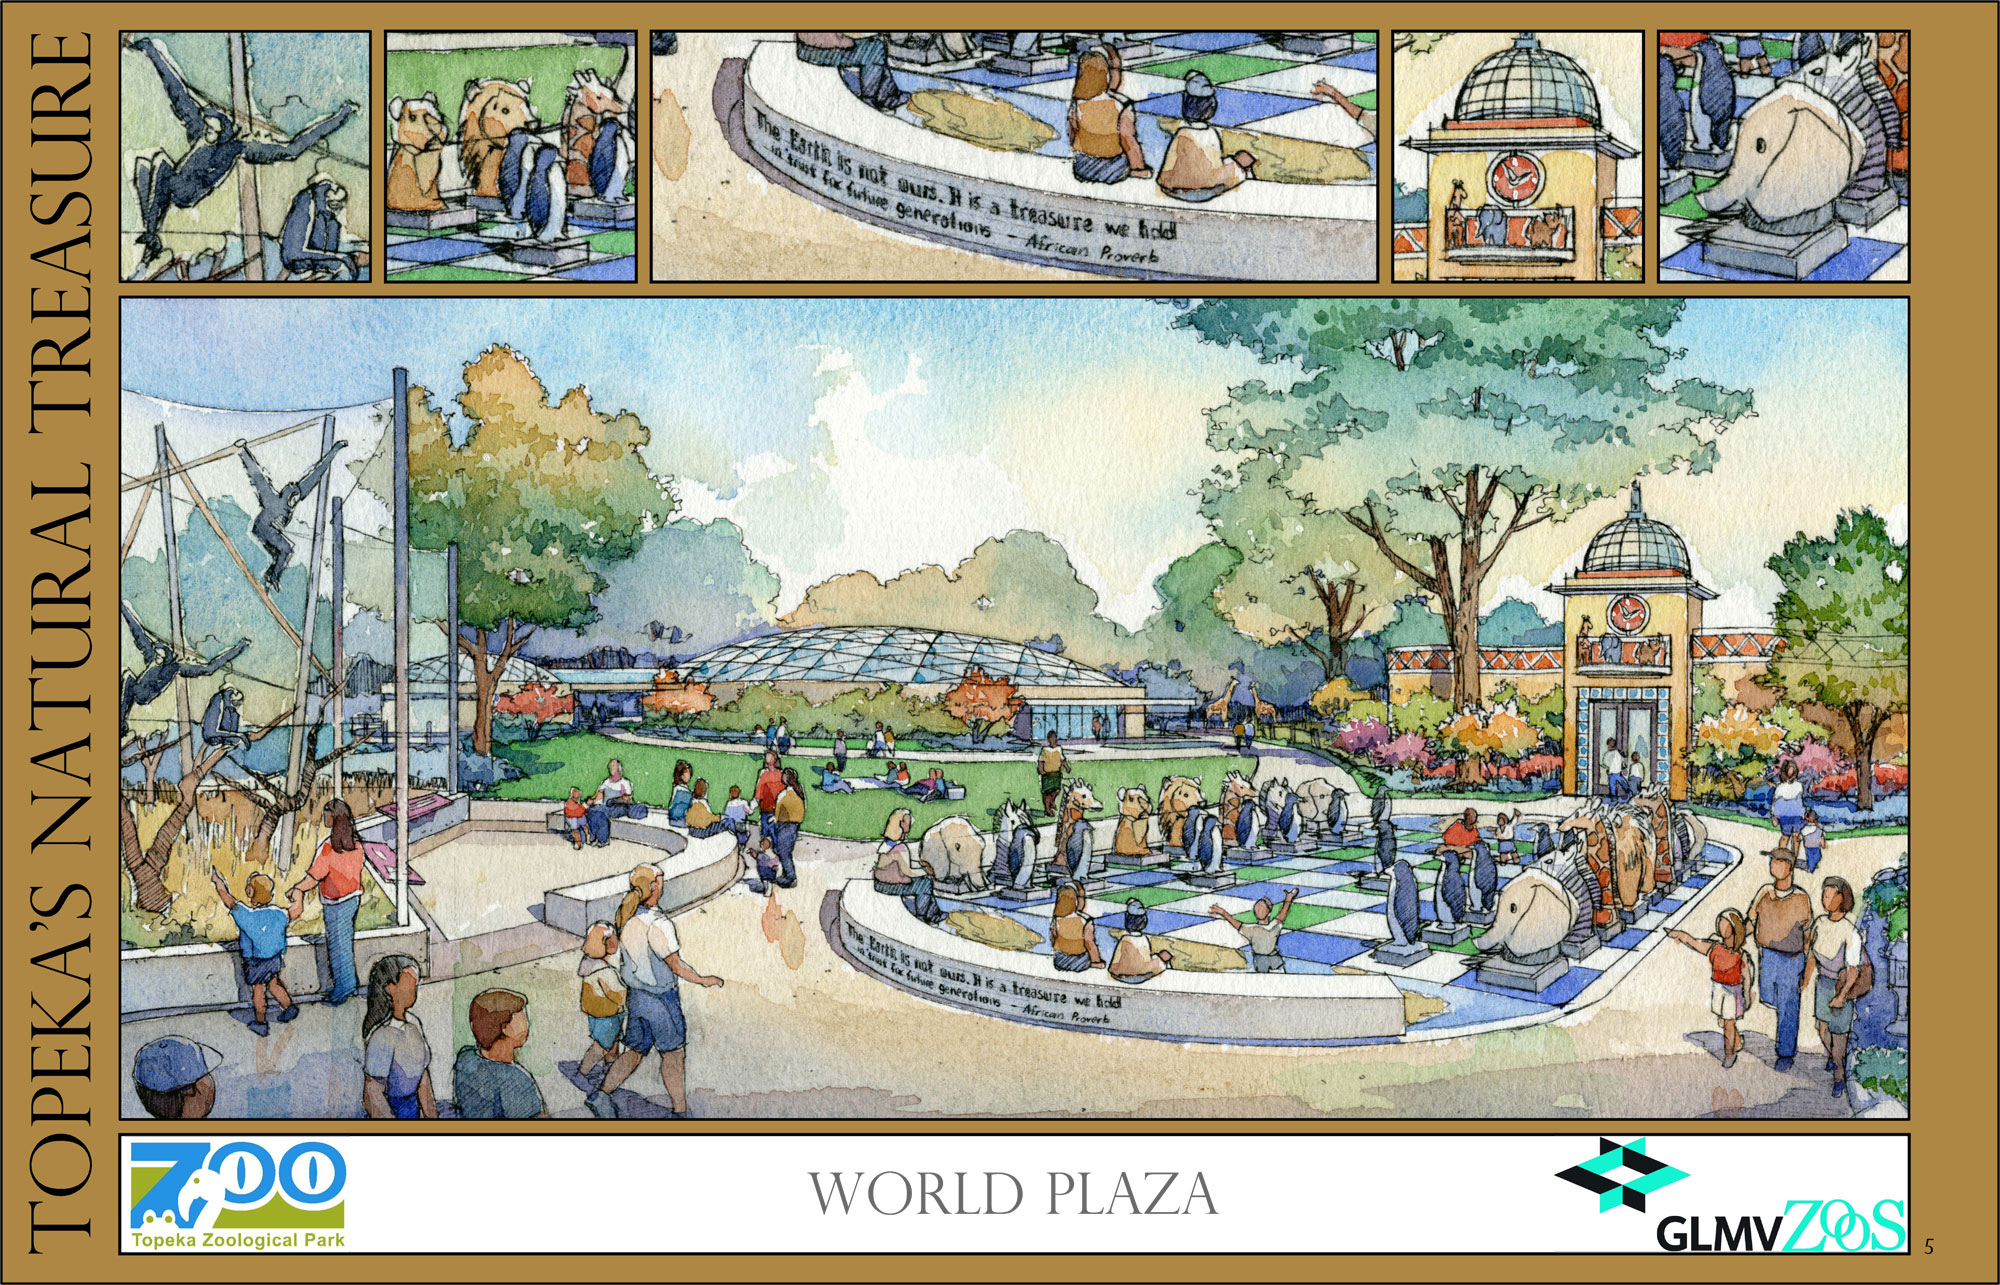 World Plaza